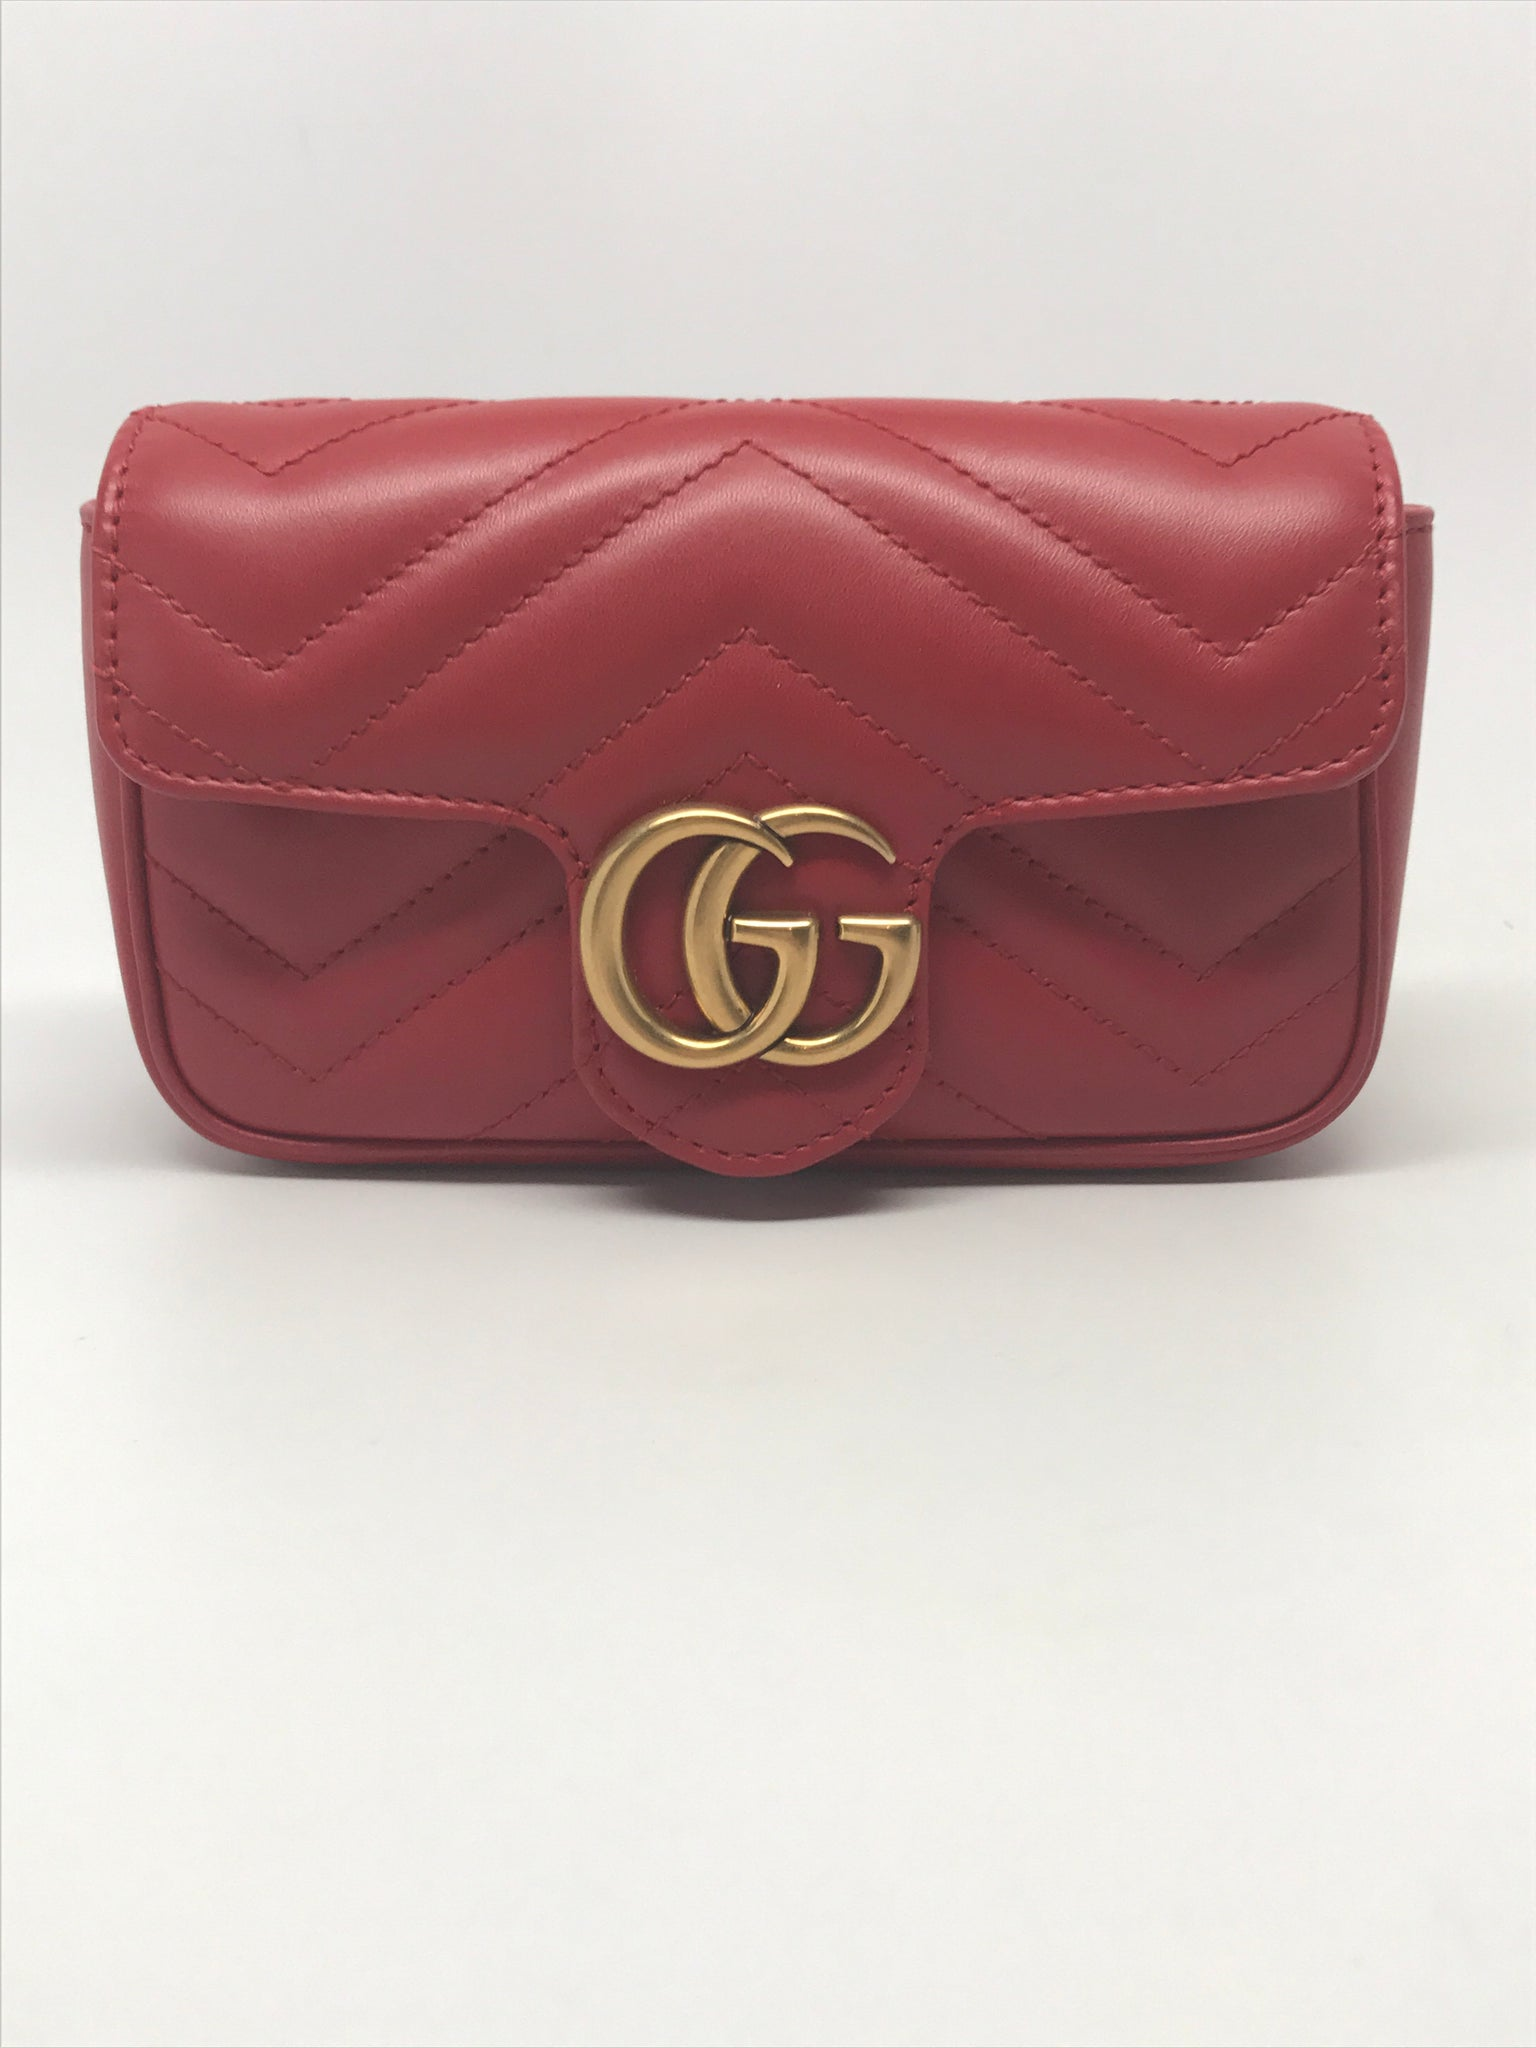 GUCCI GG MARMONT SUPER MINI SHOULDER BAG IN HIBISCUS RED